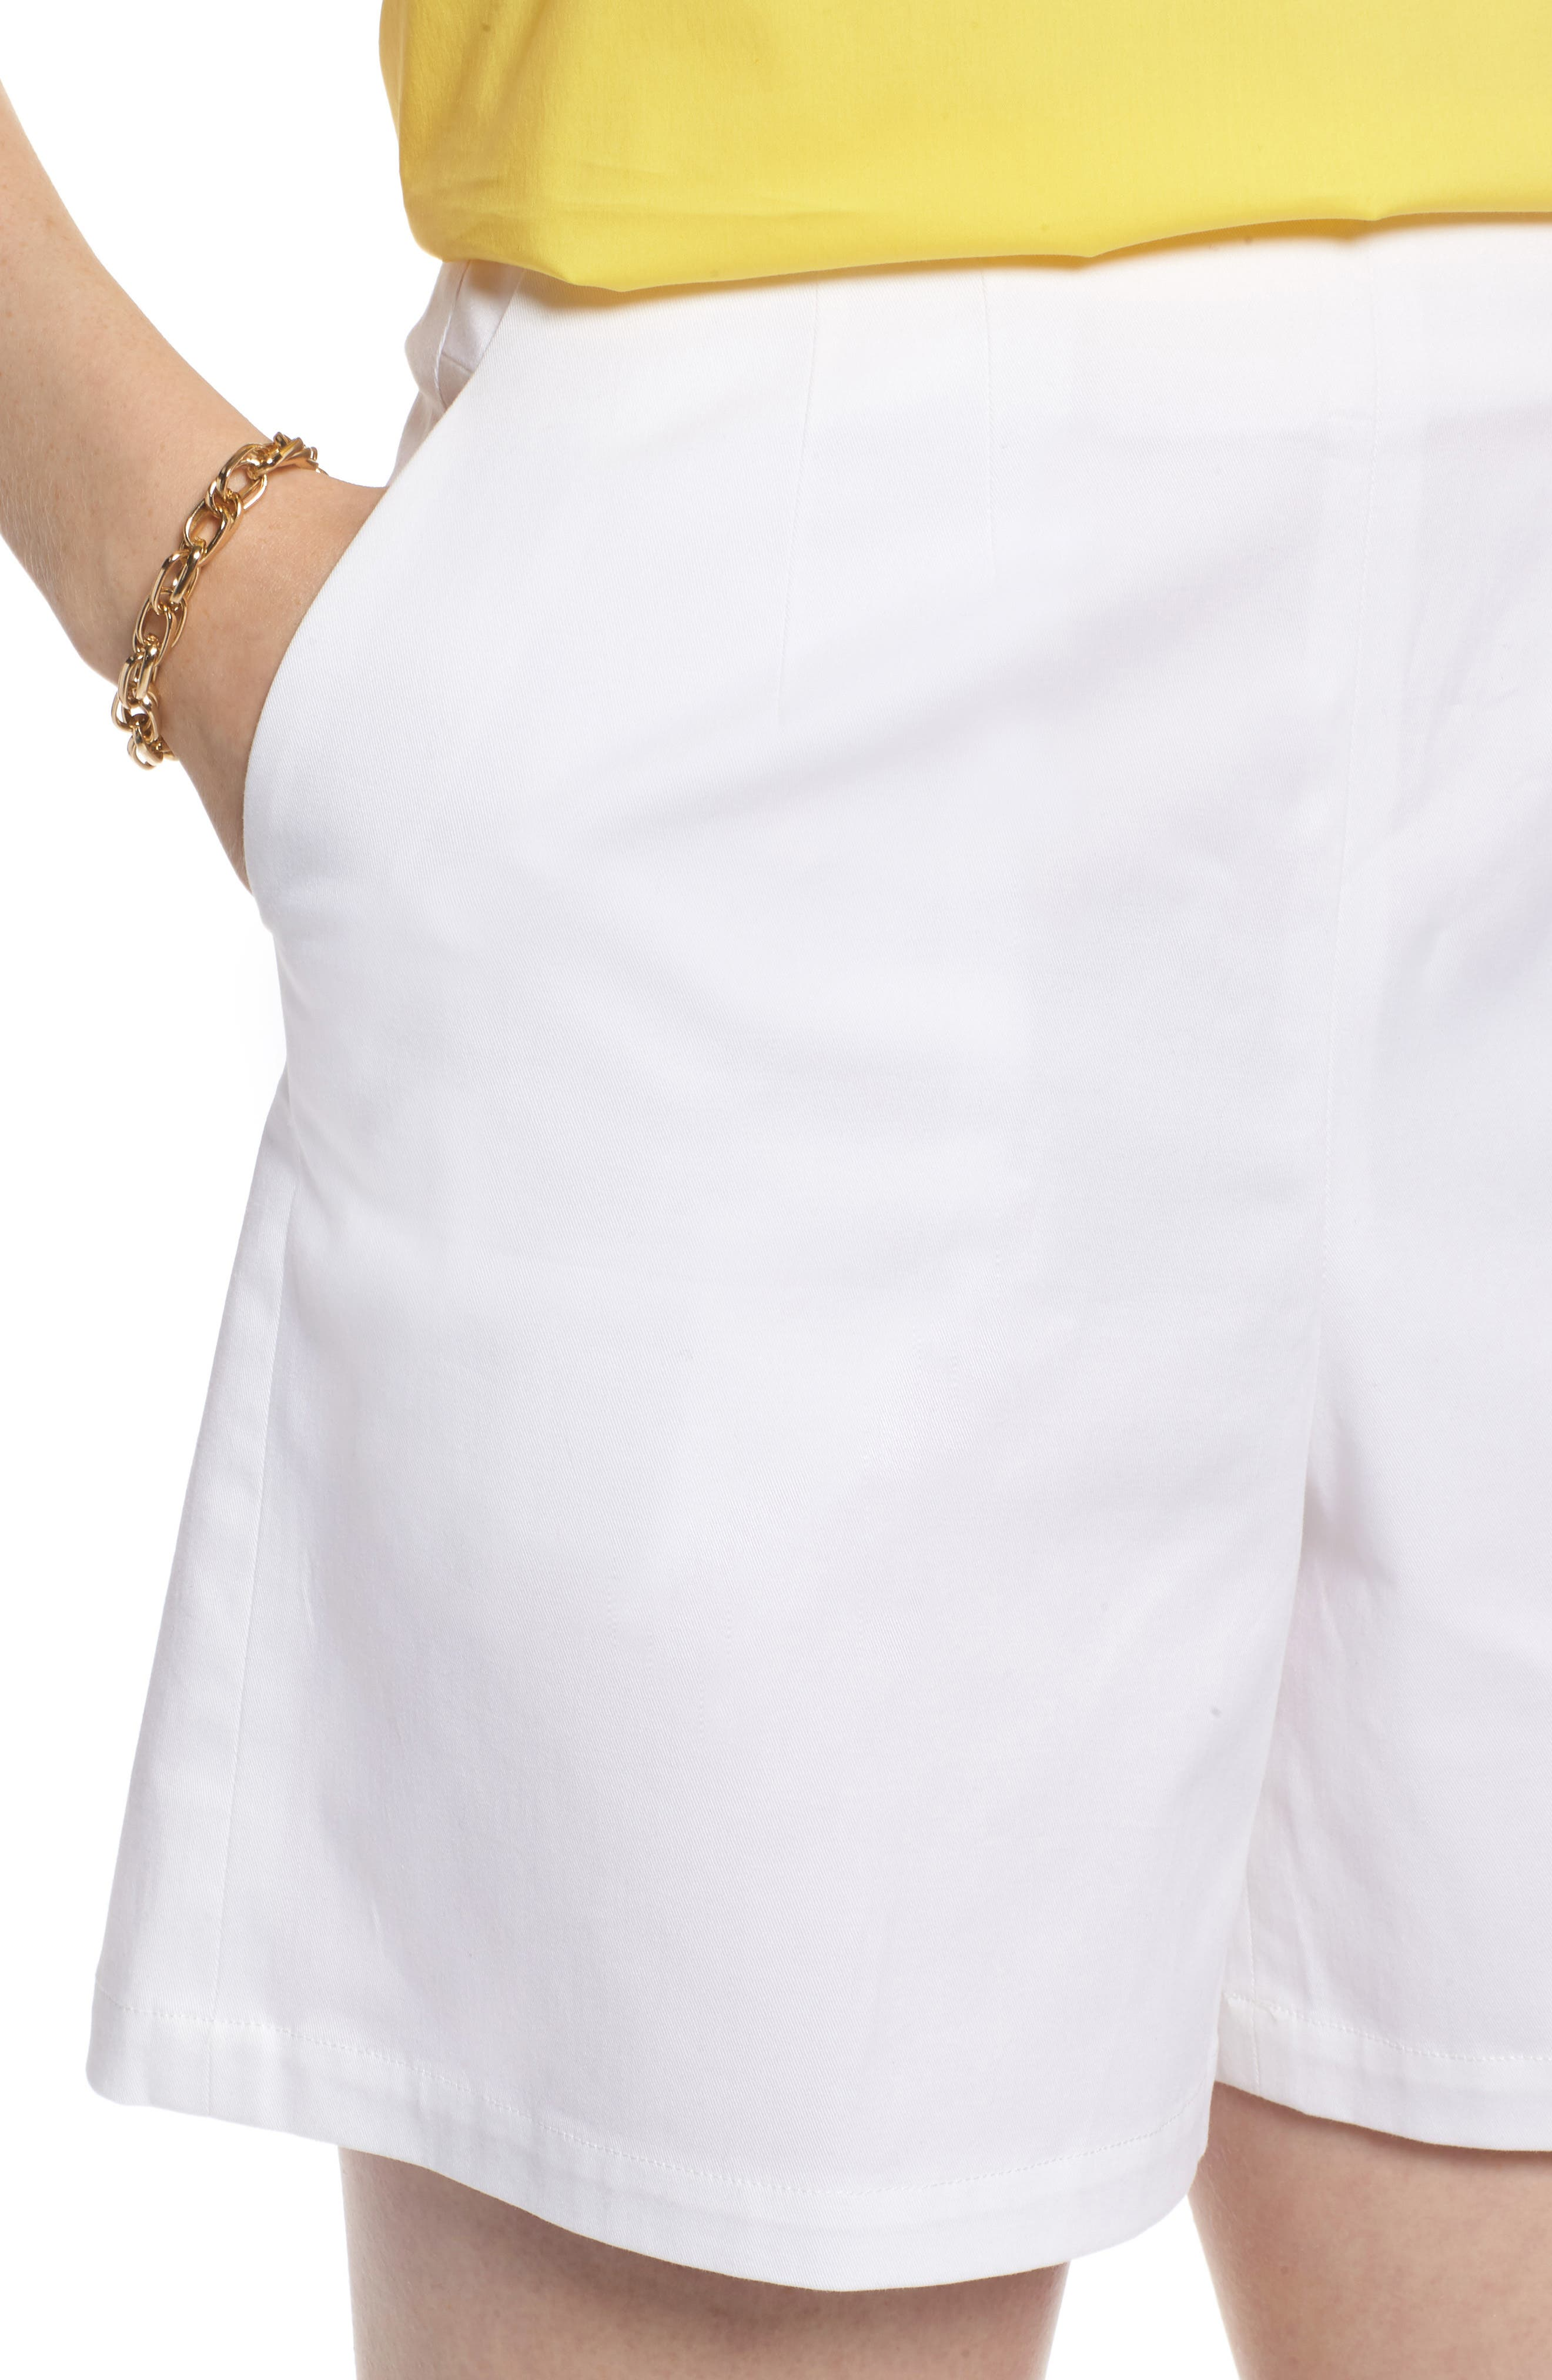 Clean Twill Shorts,                             Alternate thumbnail 3, color,                             White